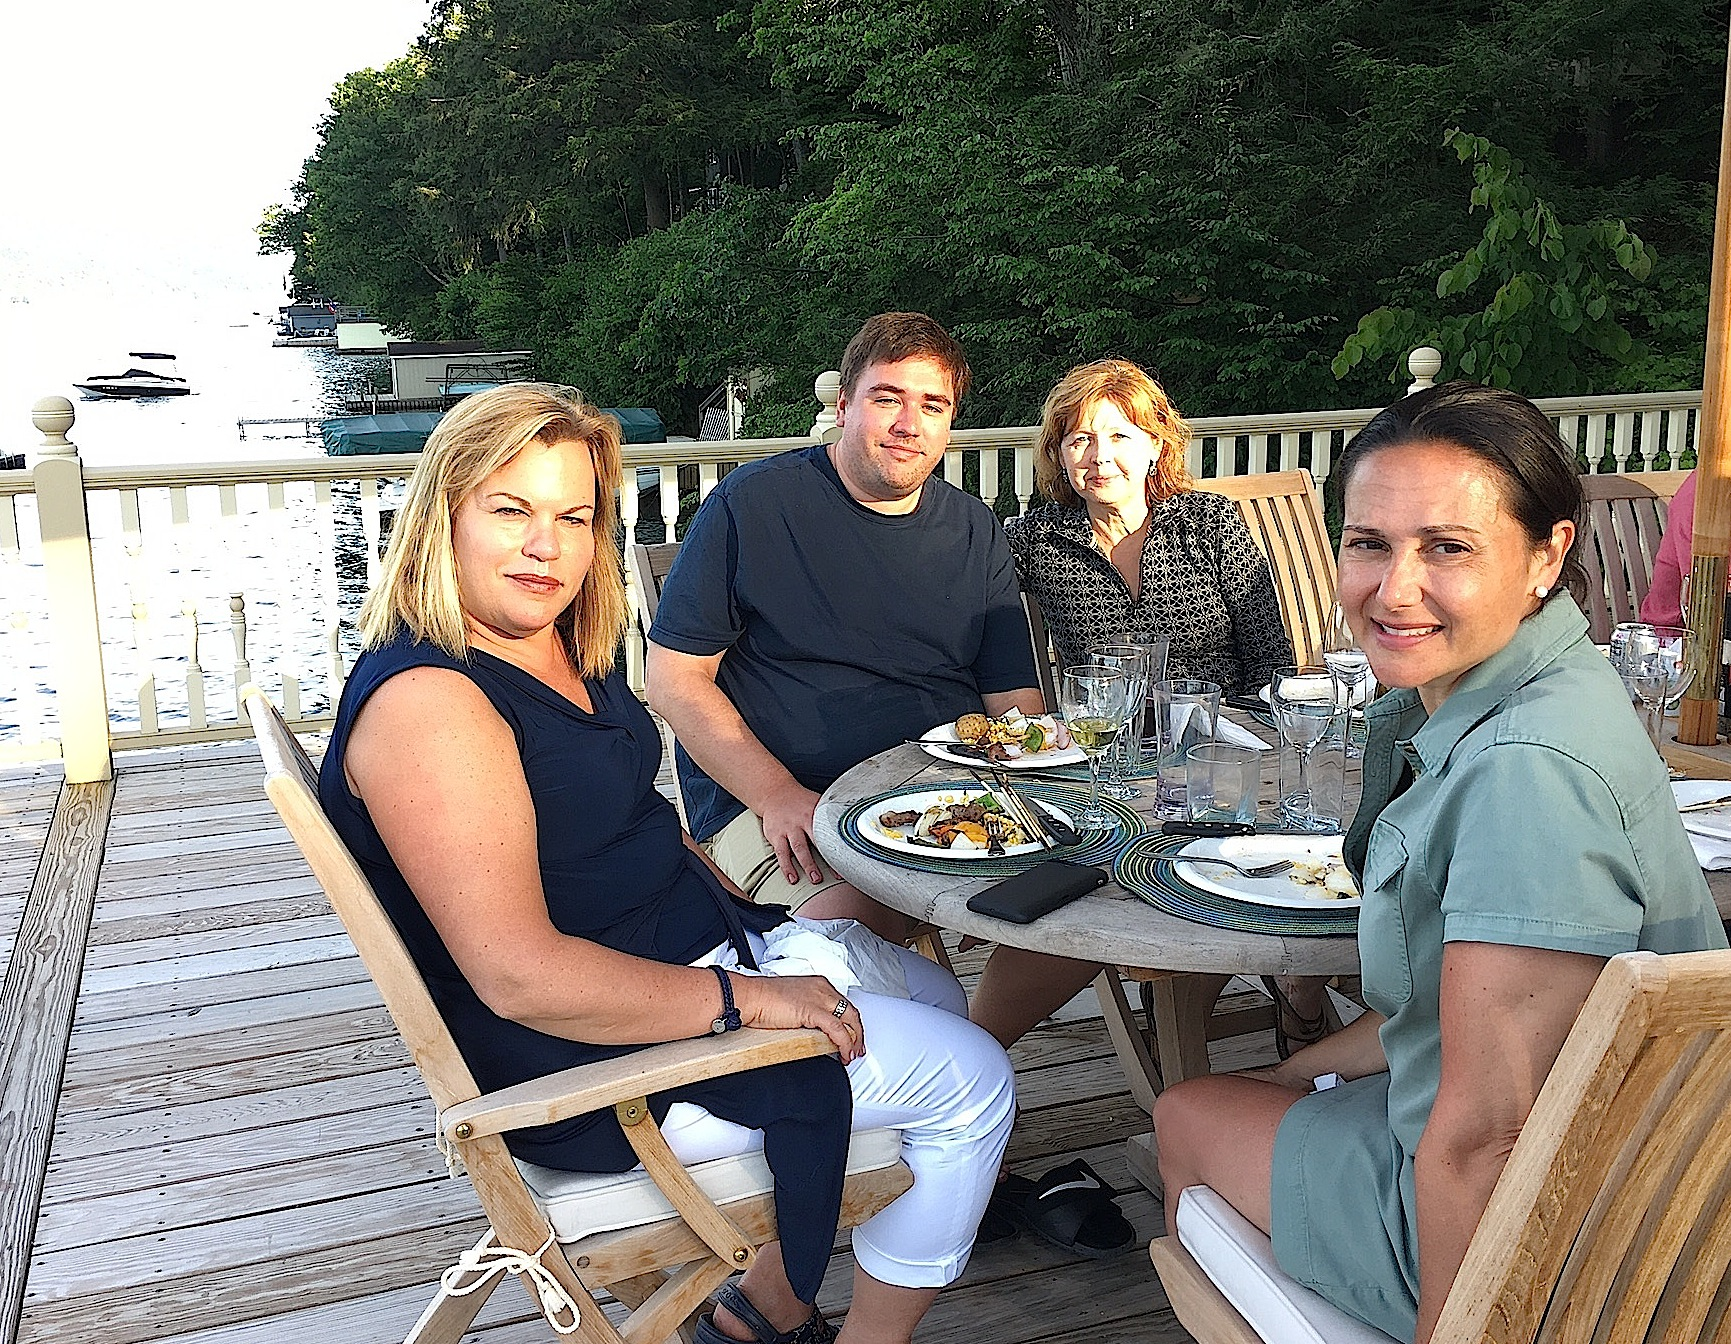 Celeste, Greg, Barbara, & Allie  7-7-18